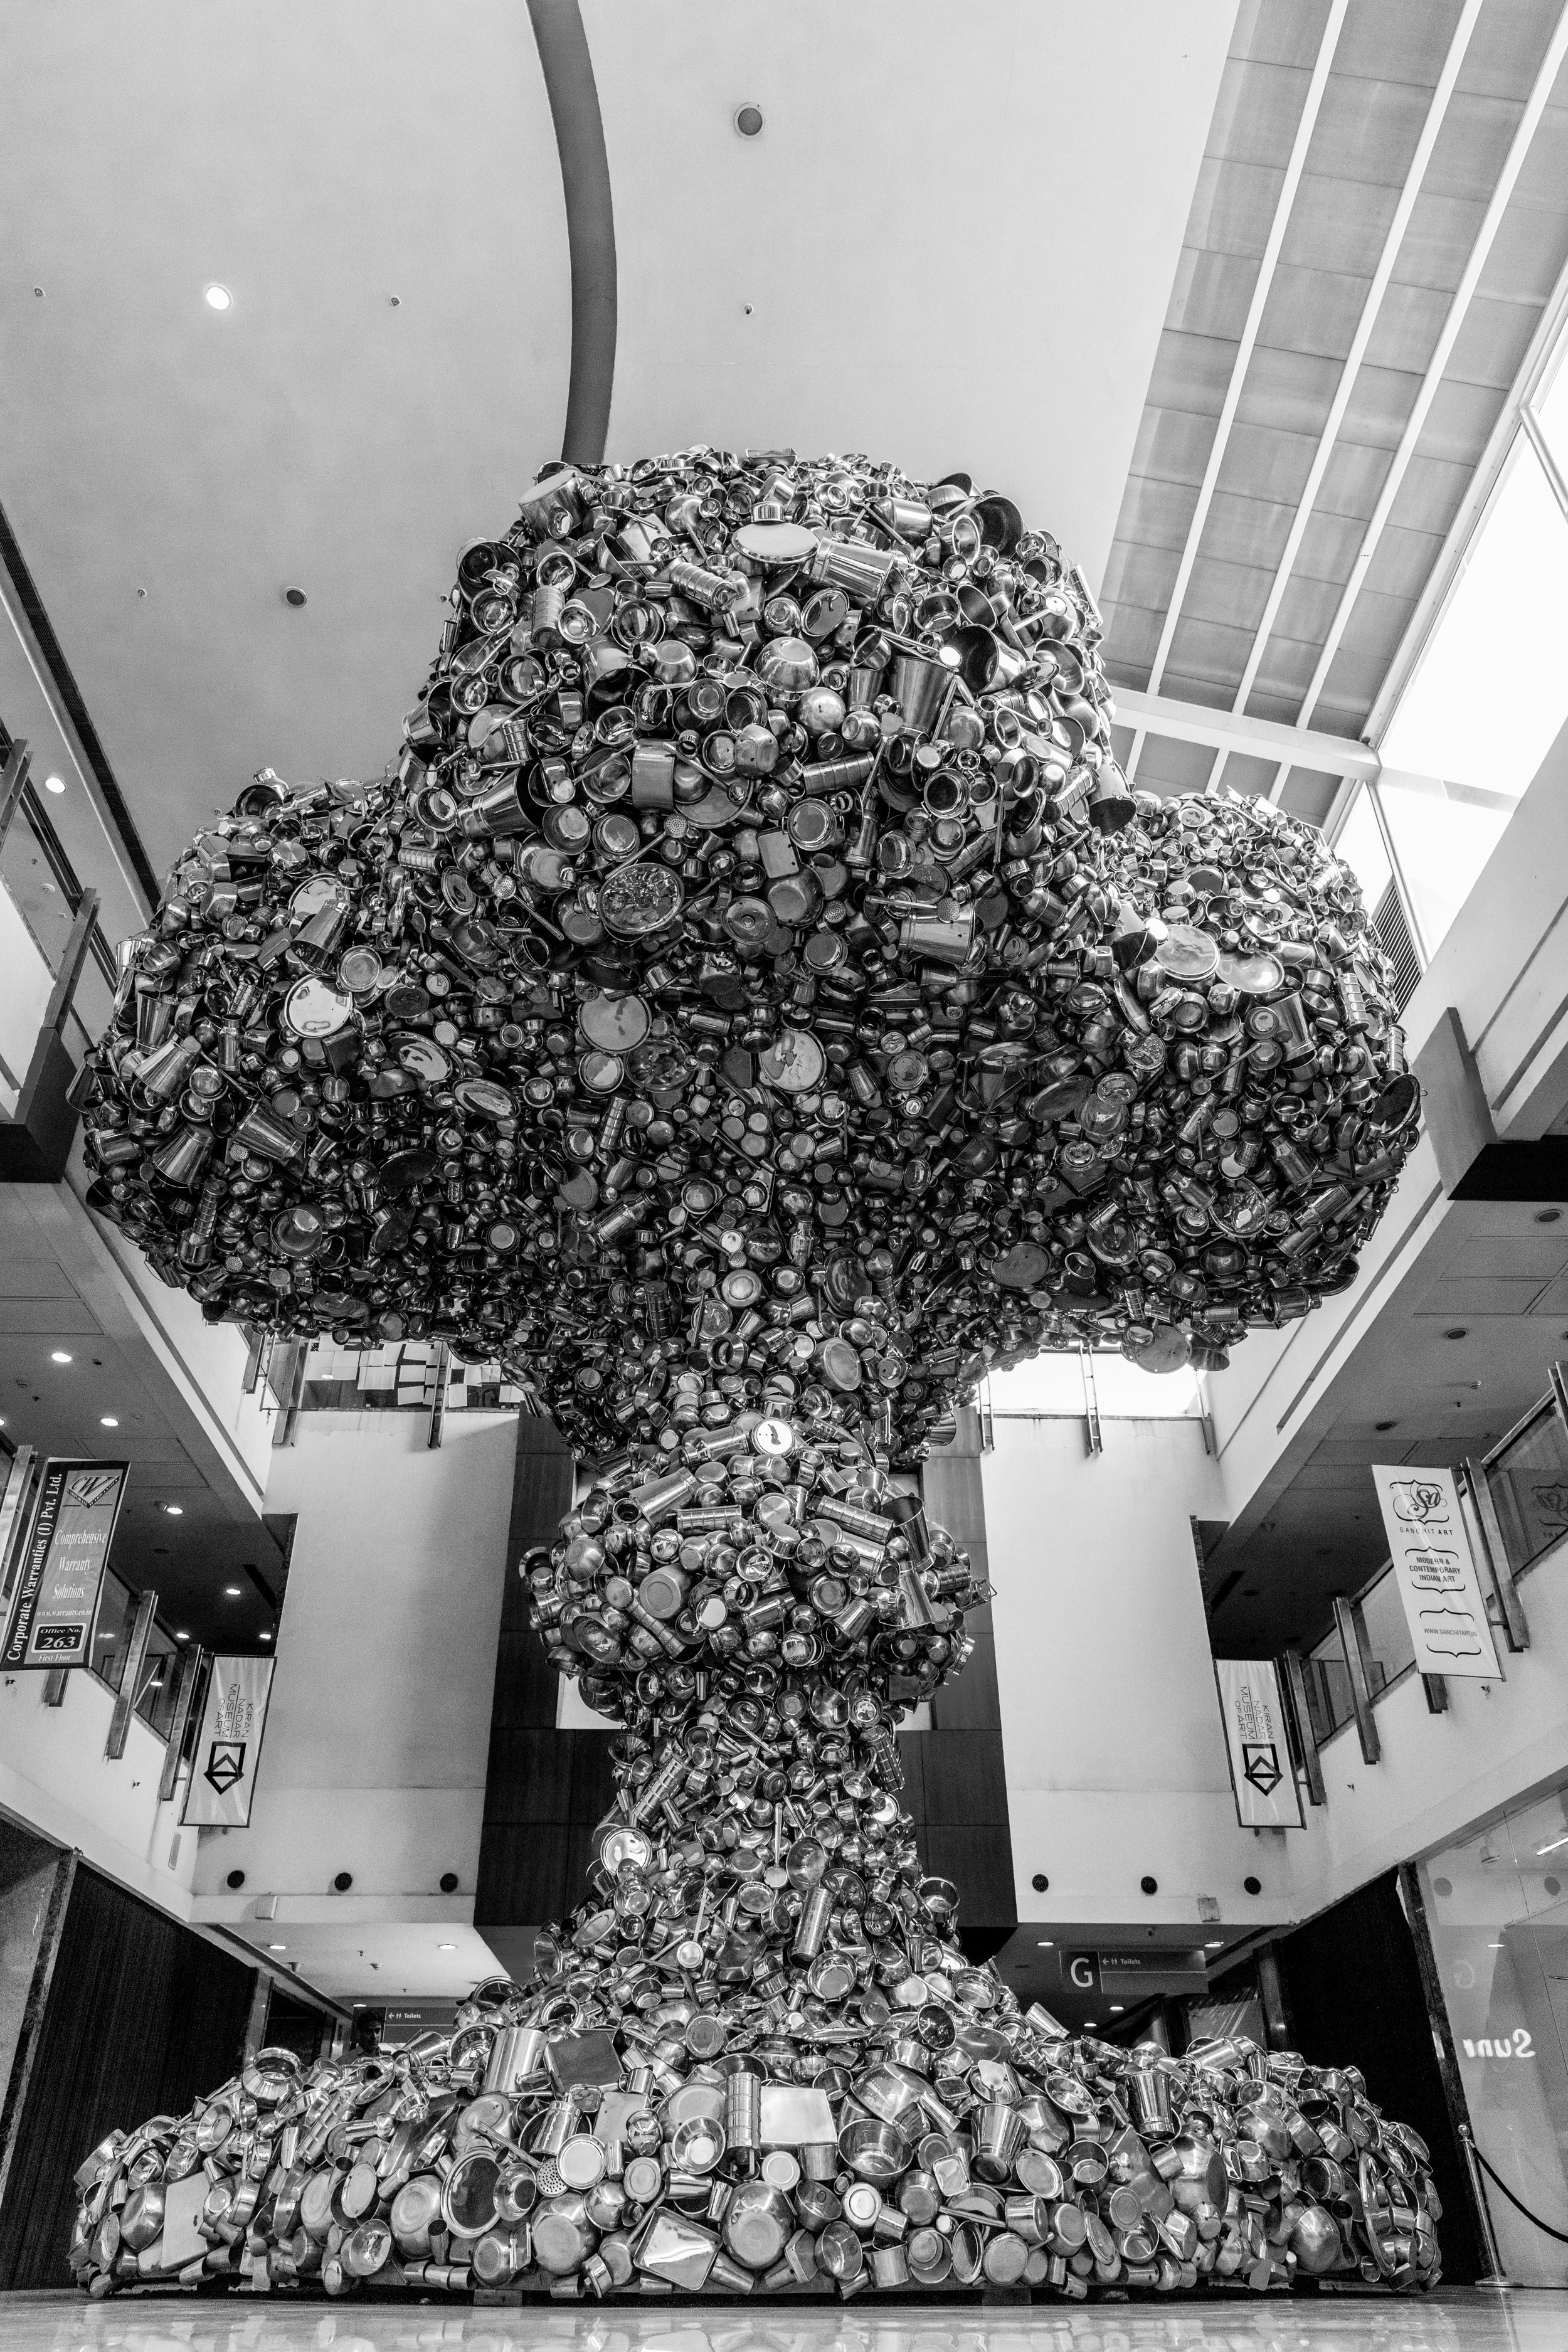 This is a huge mushroom-shaped Sculpture made from countless steel utensils. It is installed in  Kiran Nadar Museum of Art , Saket, New Delhi. It measures 36 X 36 ft and weighs 20 tonnes.